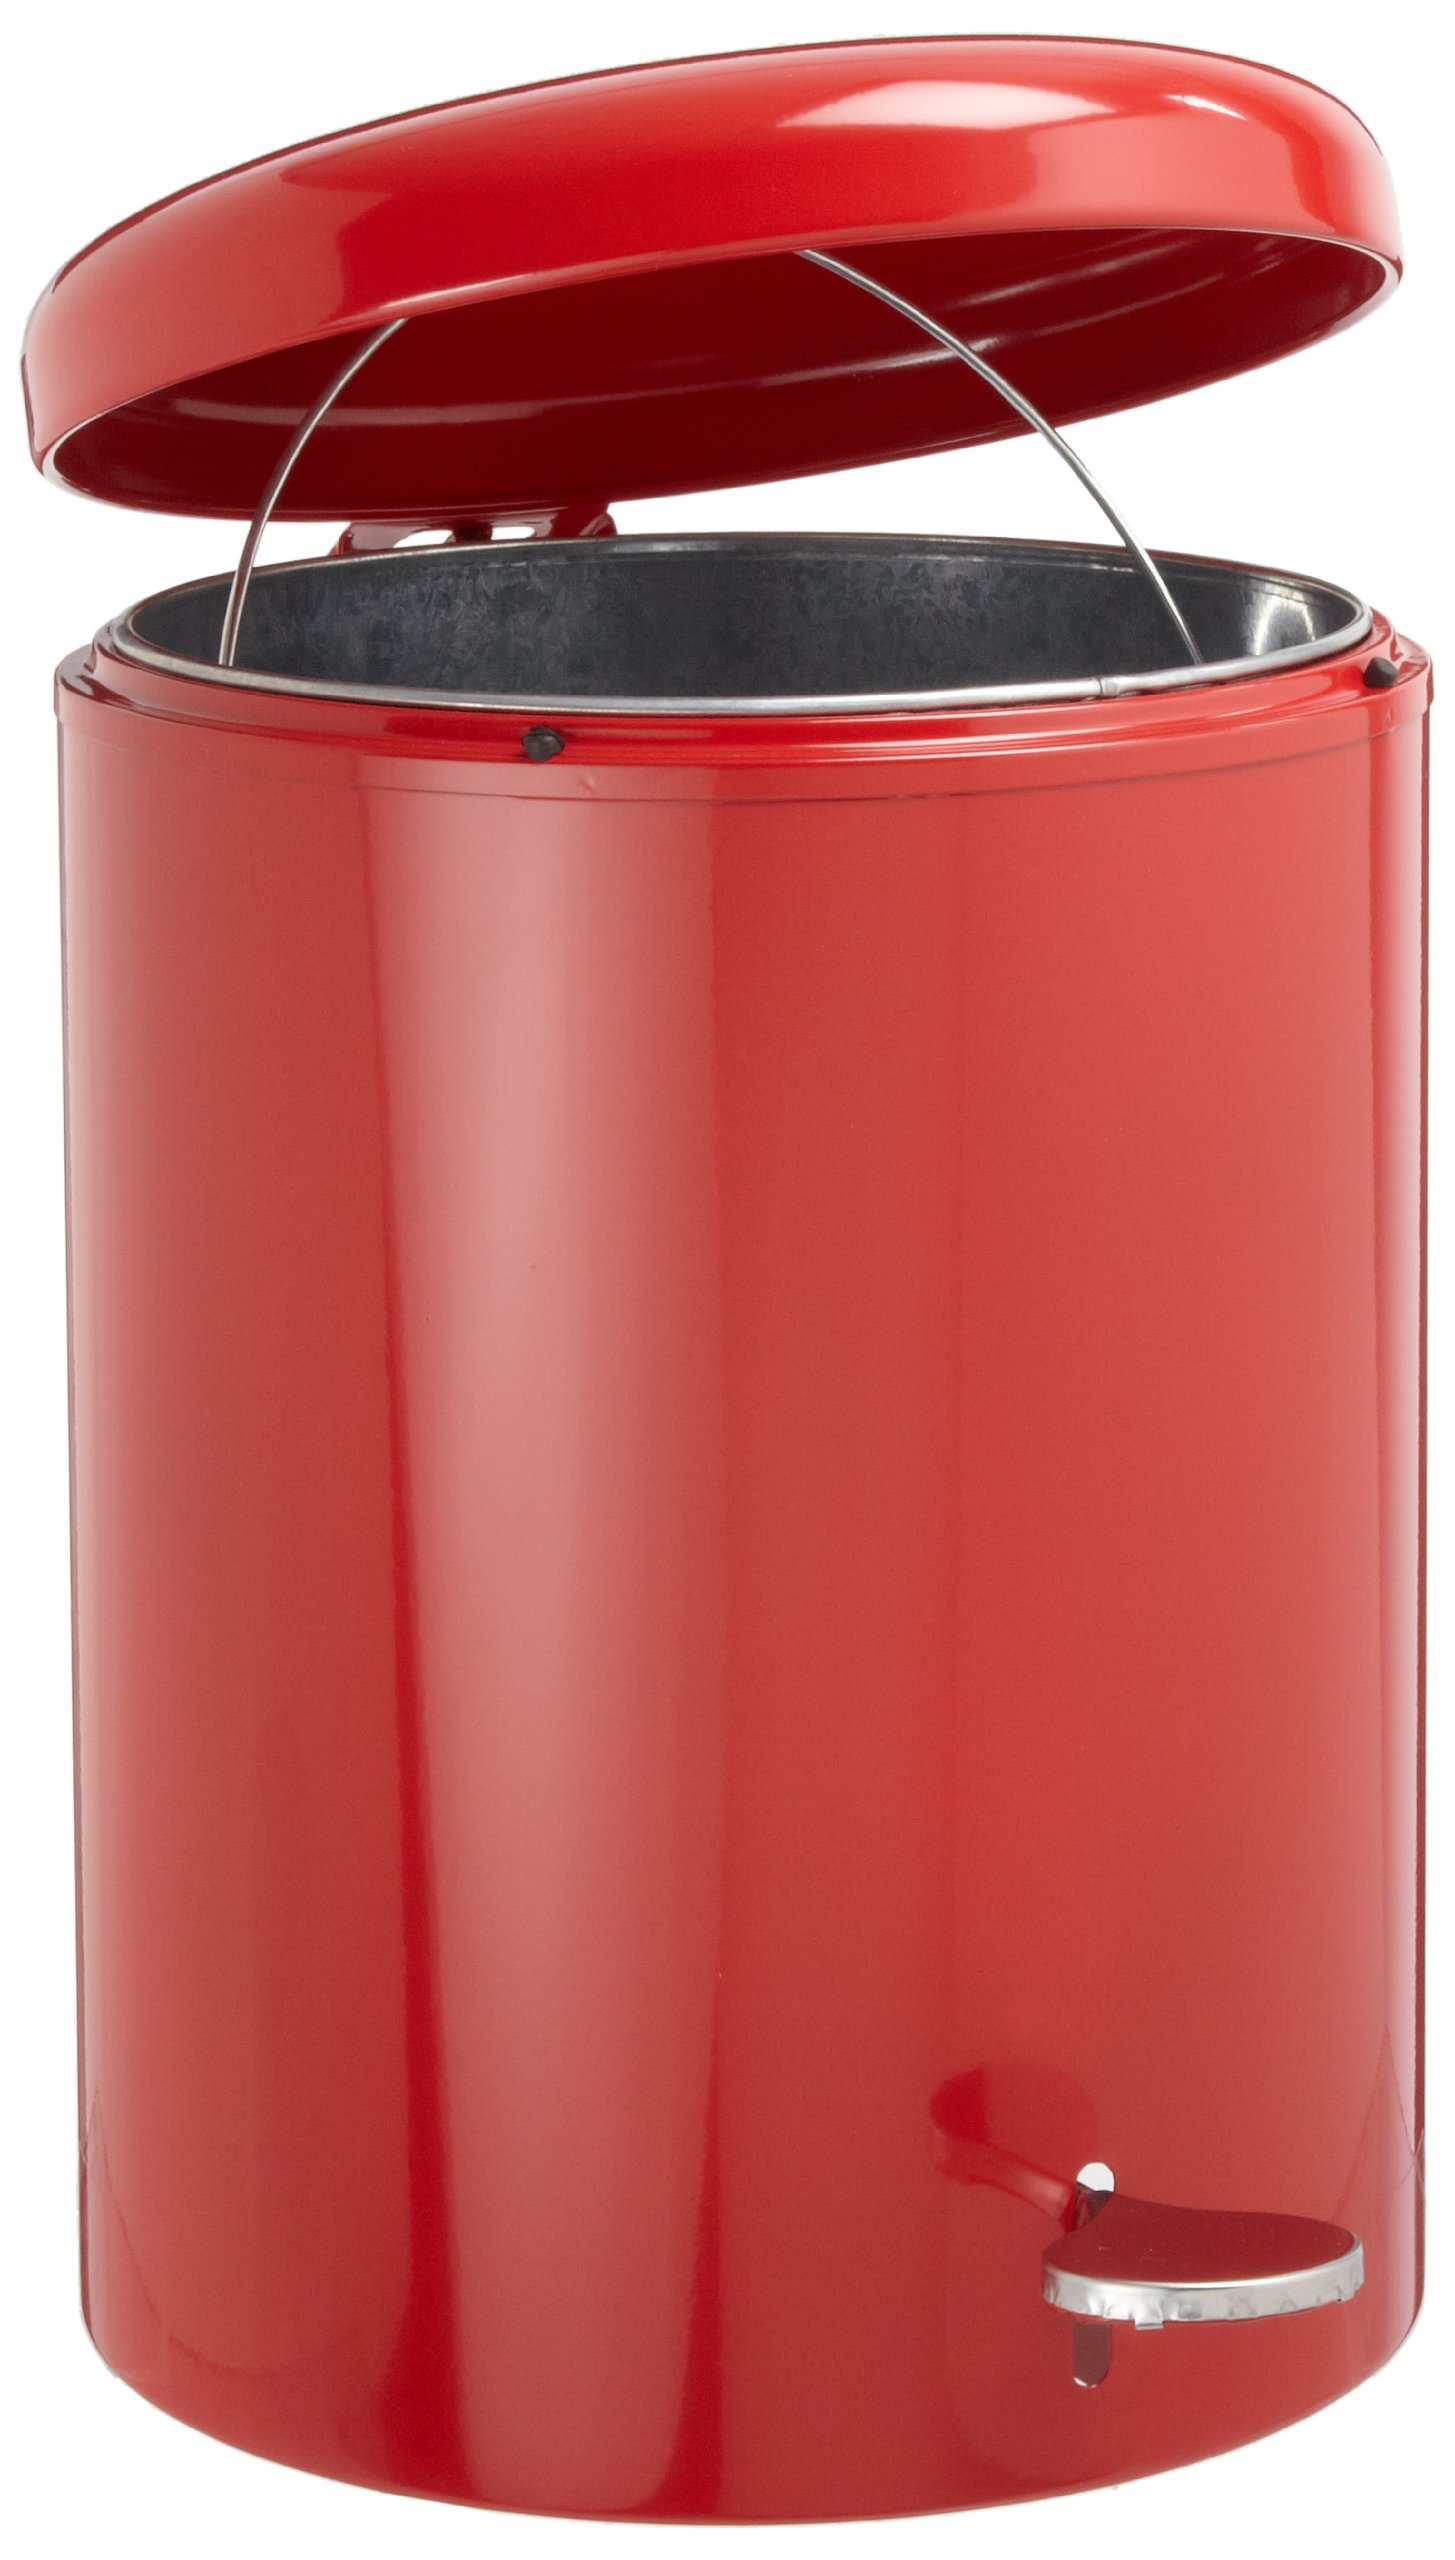 Witt 2240RD Step On Metal Biohazard Waste Container, 4gal Capacity, 11-1/2'' Diameter x 16'' Height, Red